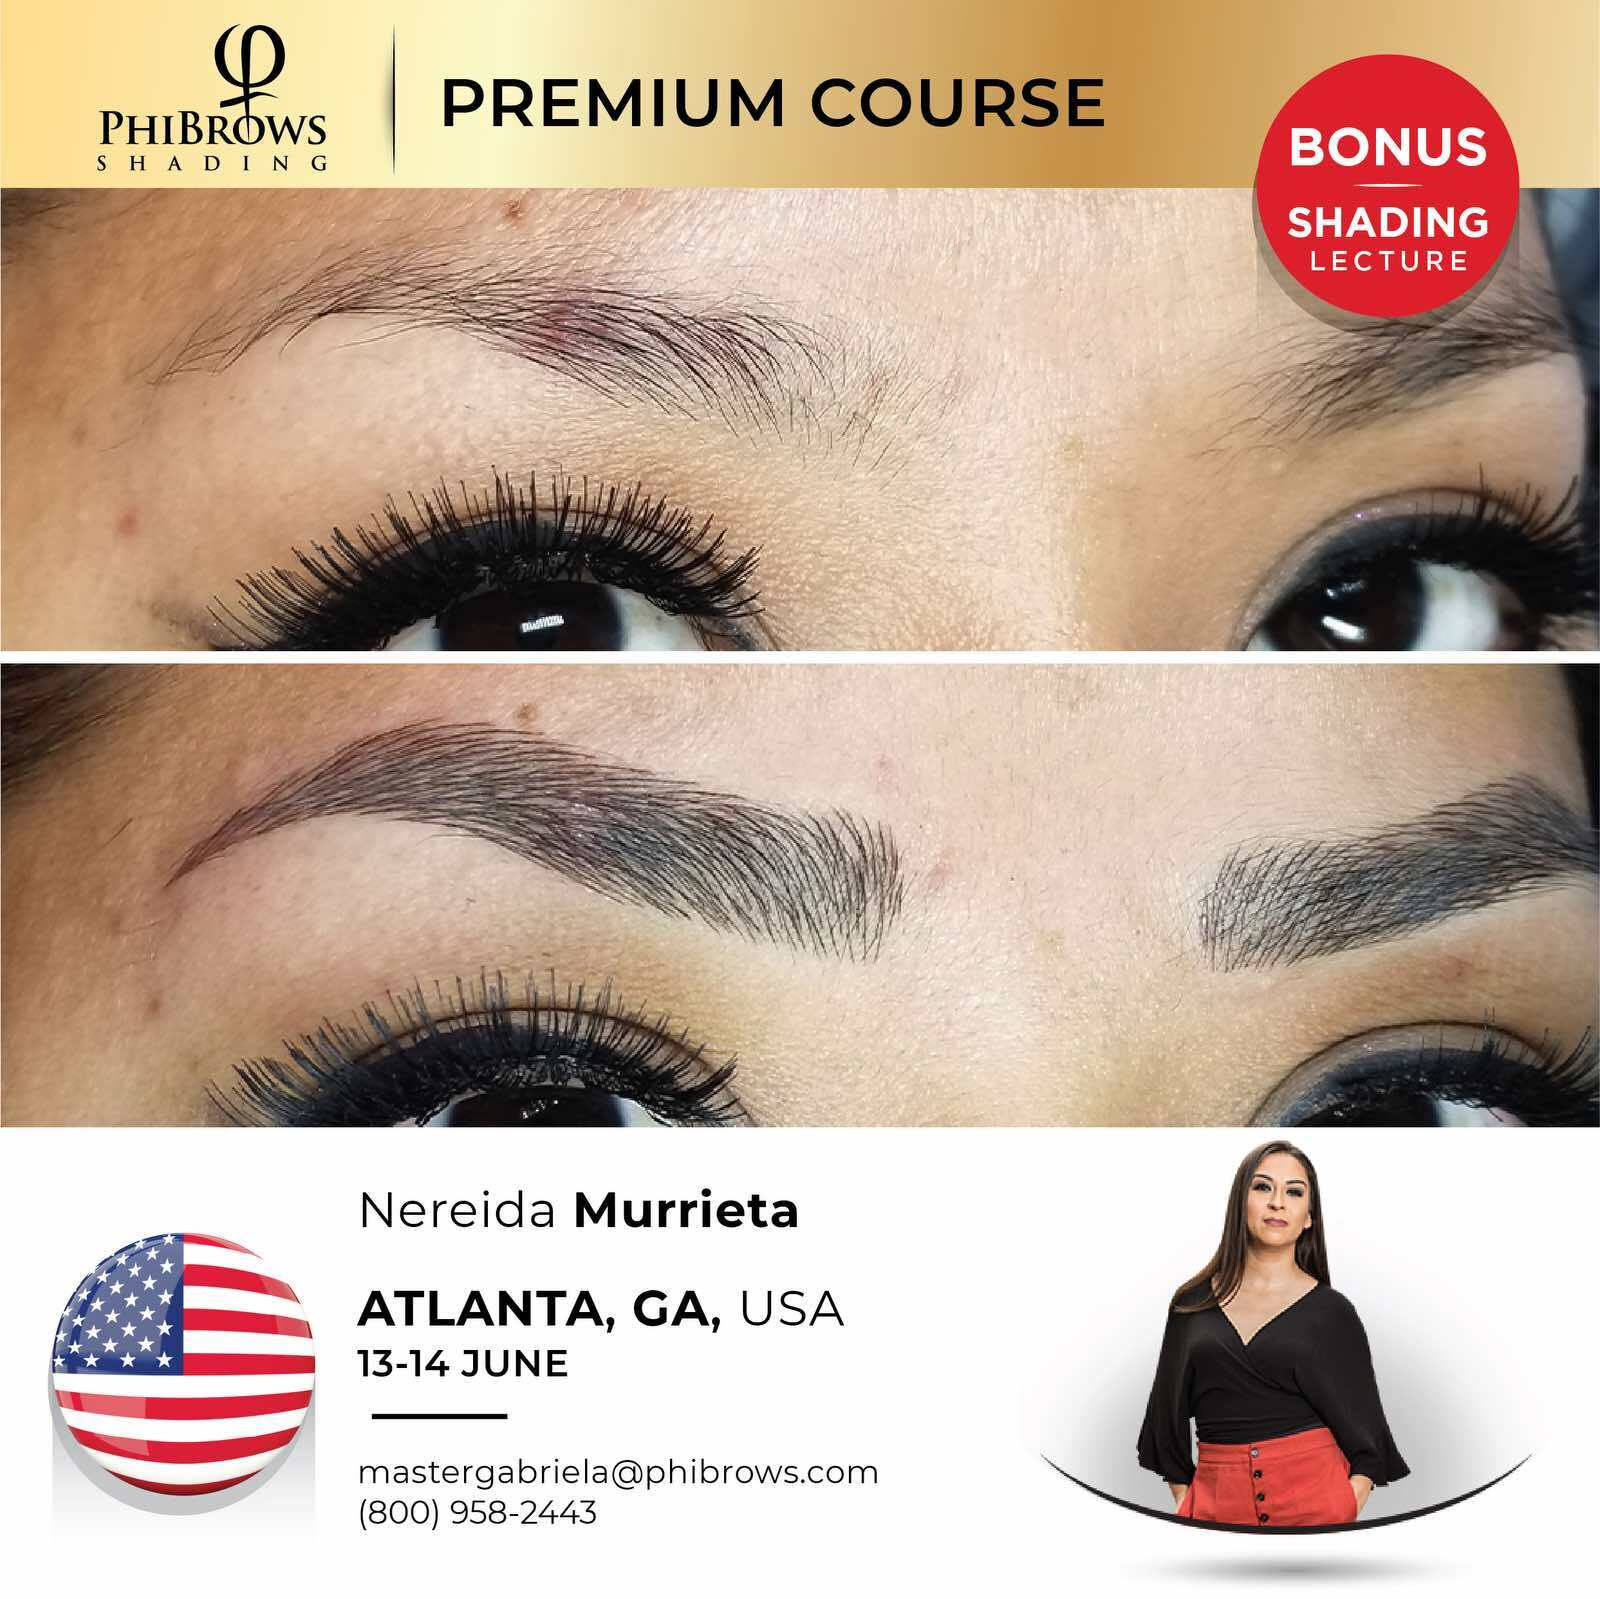 20-06-13 Phibrows Microblading Training Atlanta, GA – June 13/14